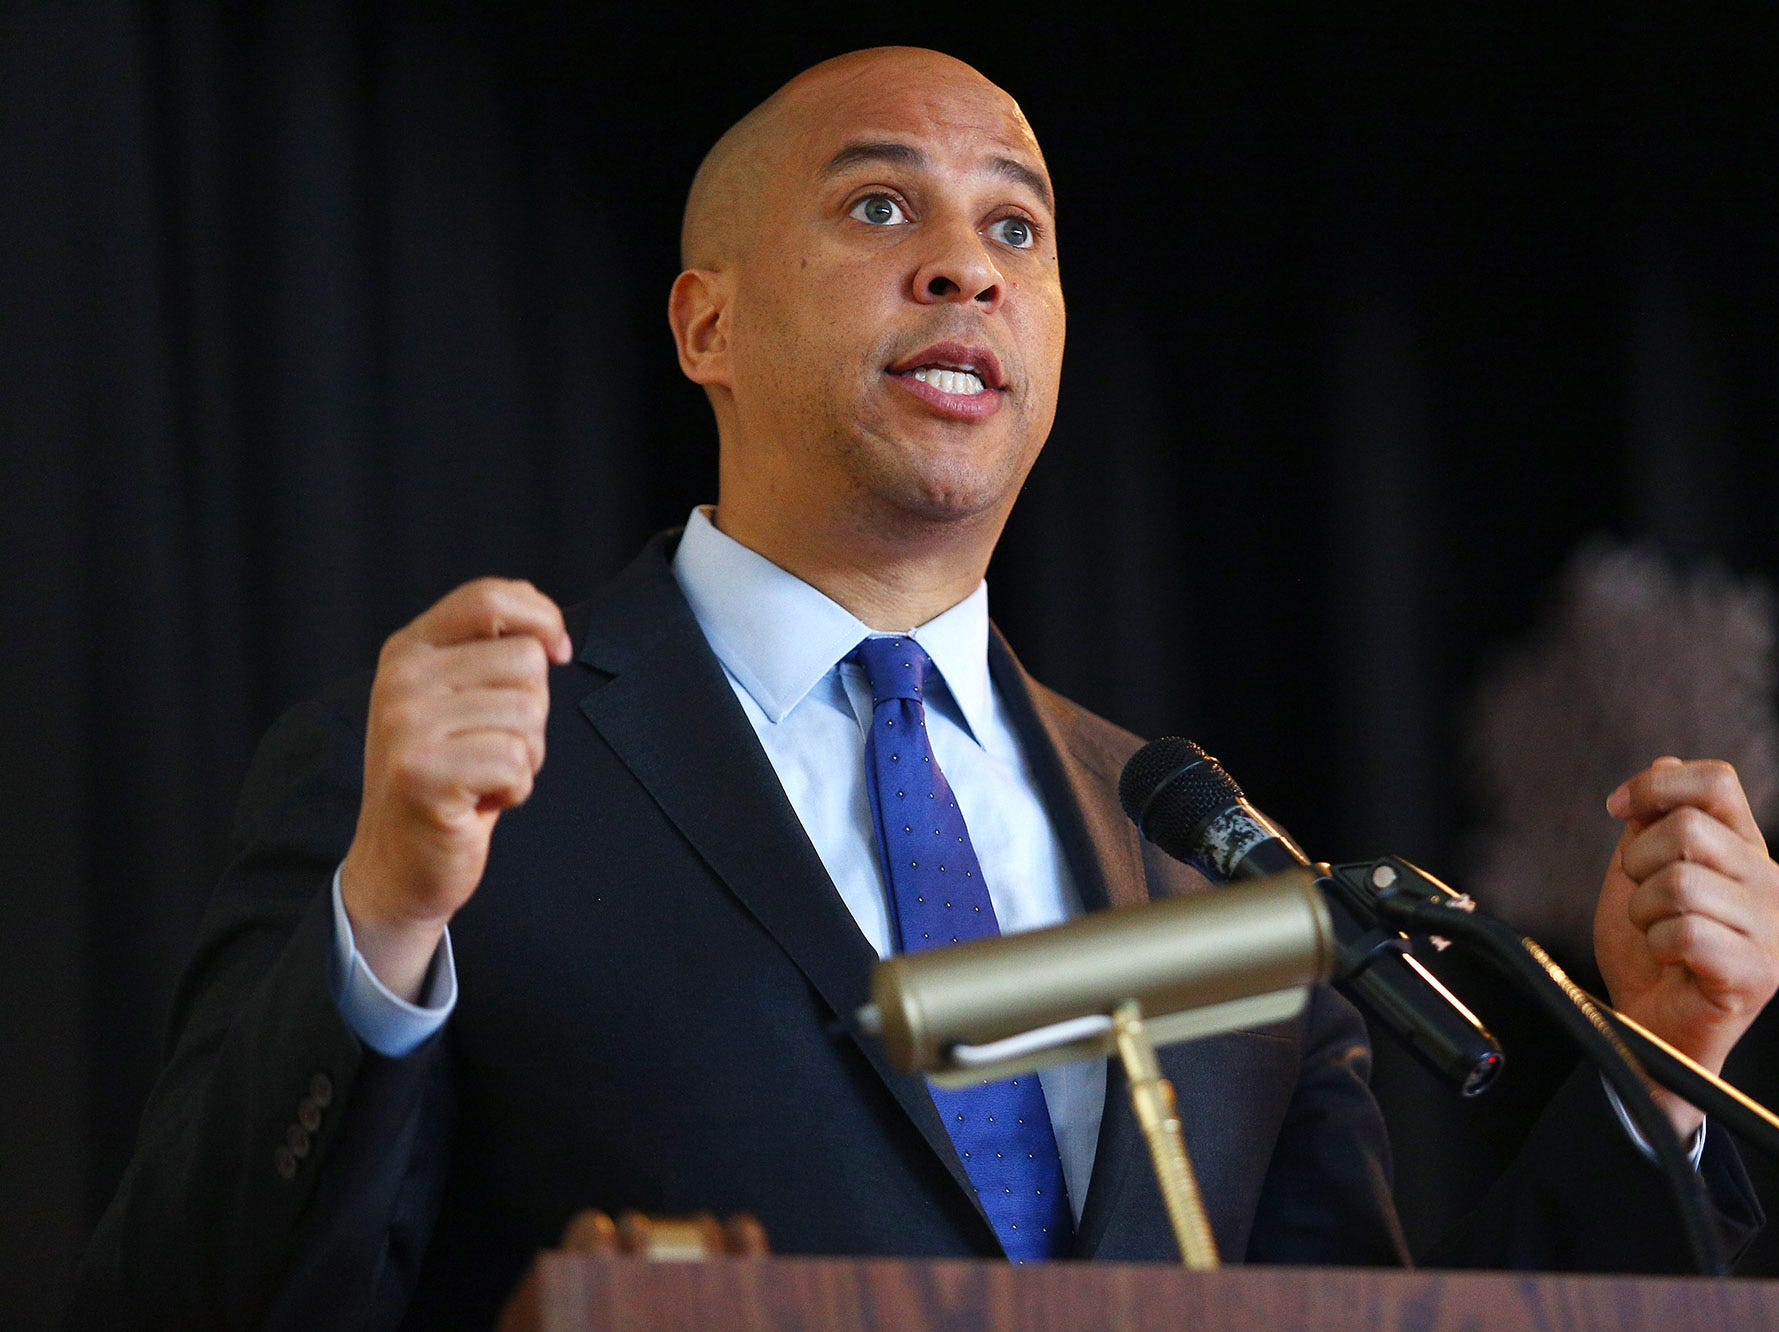 U.S. Senator Cory Booker gives the Keynote Address at Morristown's 2018 reorganization meeting at the Thomas Jefferson School in Morristown. Booker also sworn in Mayor Tim Dougherty to his third term. January 1, 2018. Morristown, NJ.